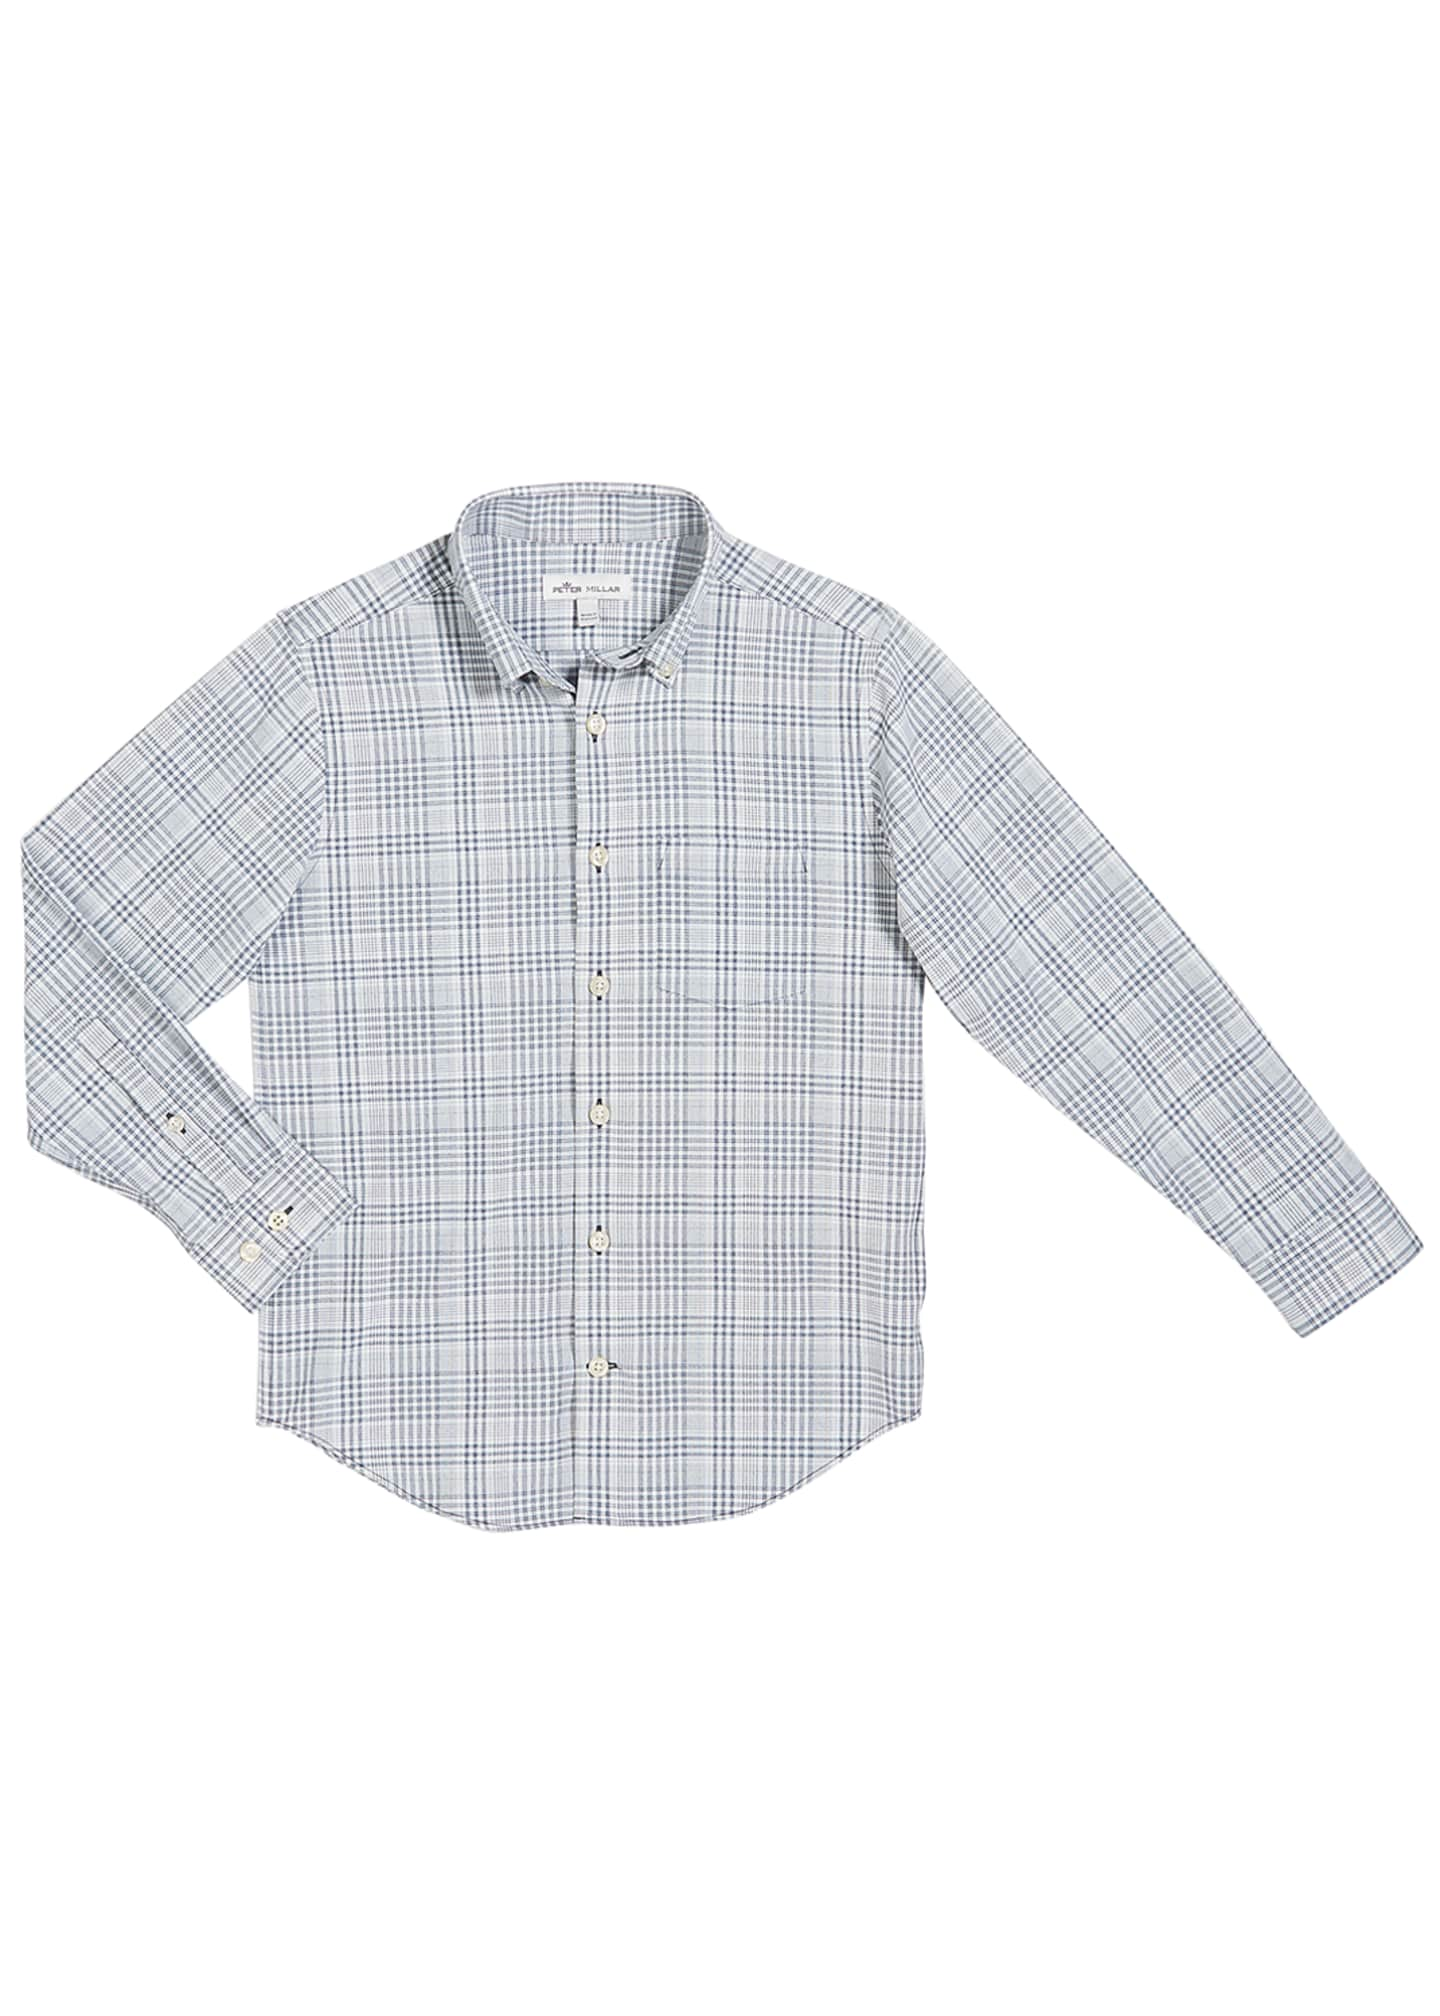 Peter Millar Boy's Check Performance Shirt, Size XXS-XL